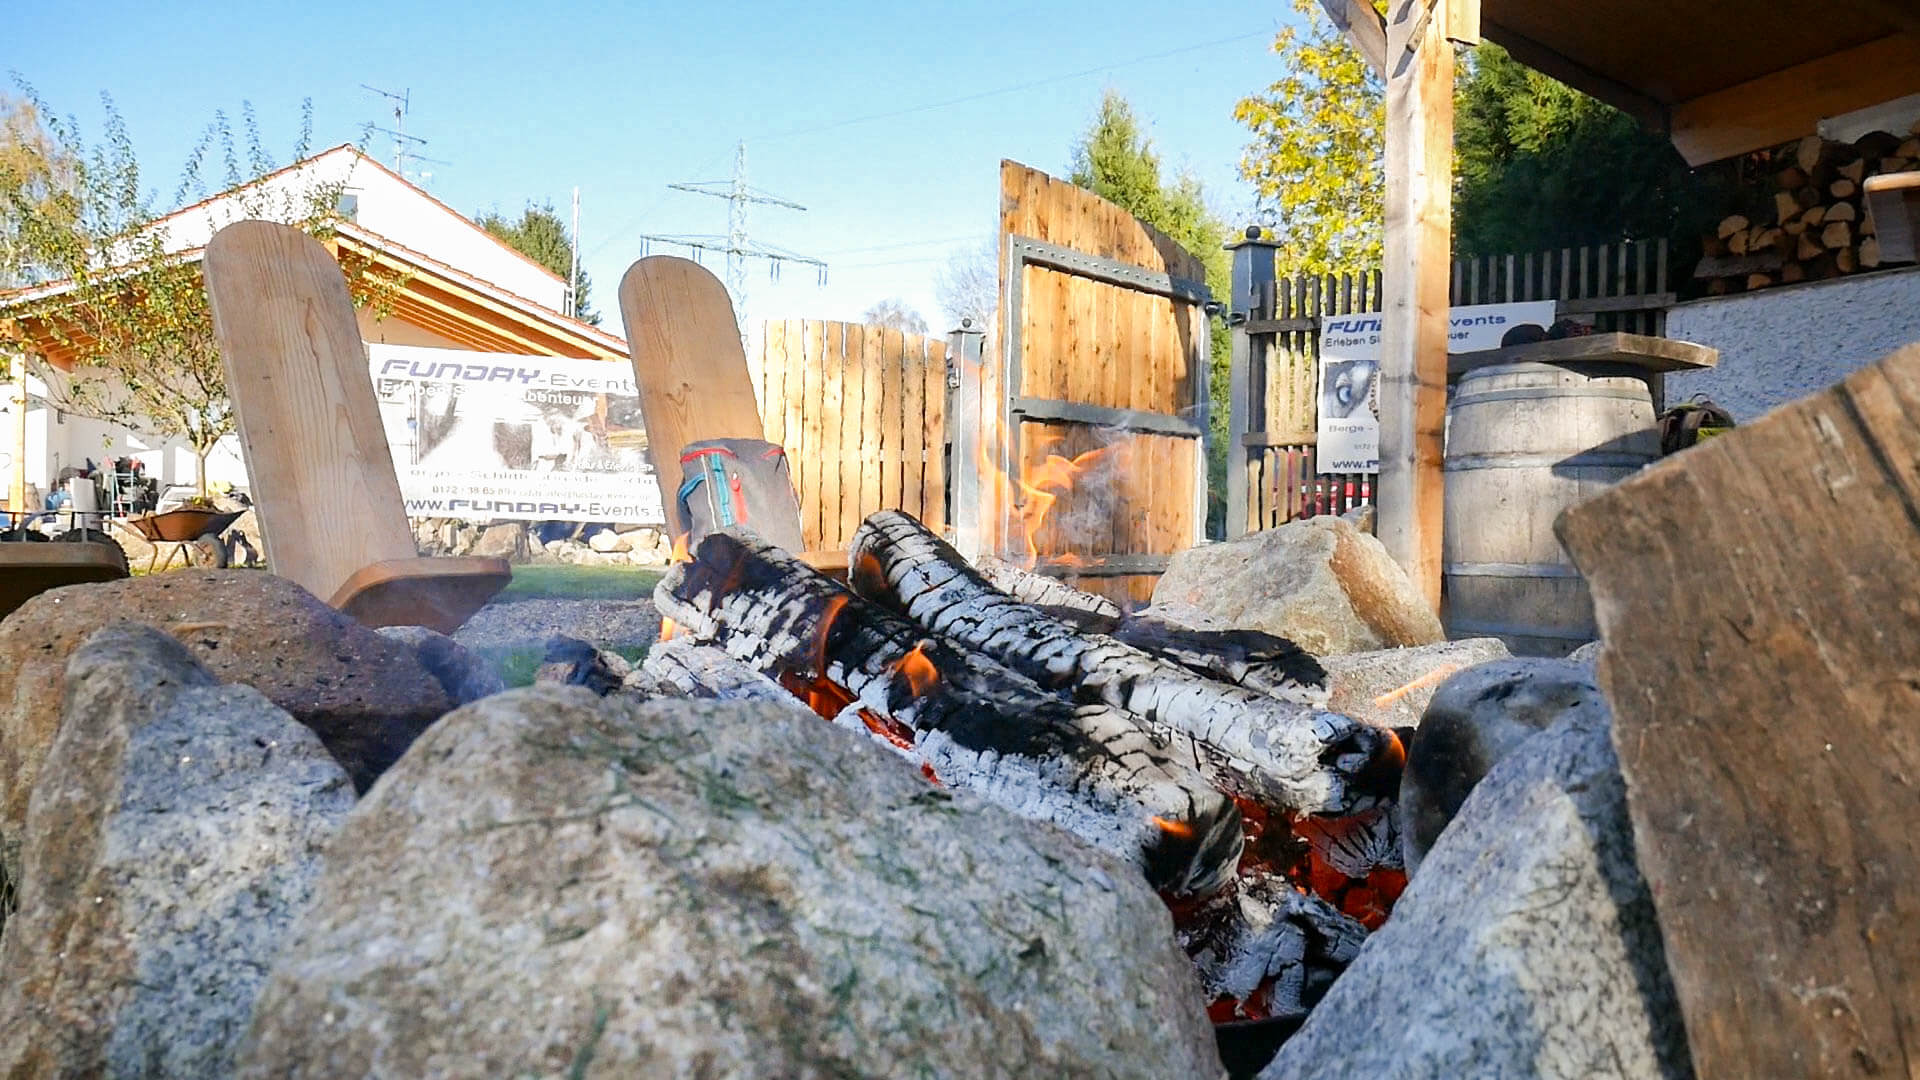 Das Lagerfeuer bei Funday-Event am Tag